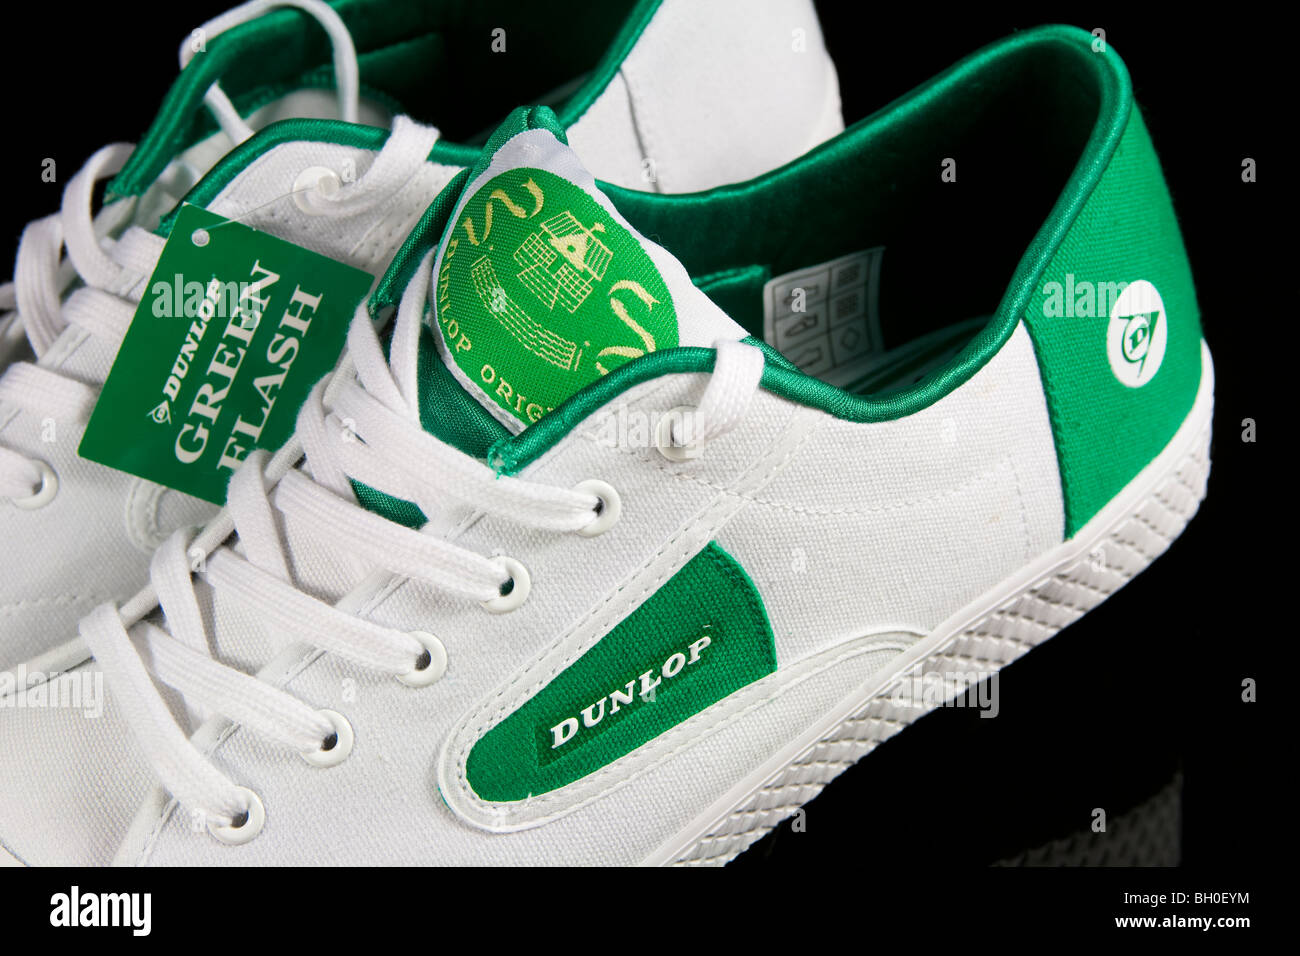 A Pair Of Dunlop Green Flash Tennis Shoes Stock Photo 27671272 Alamy